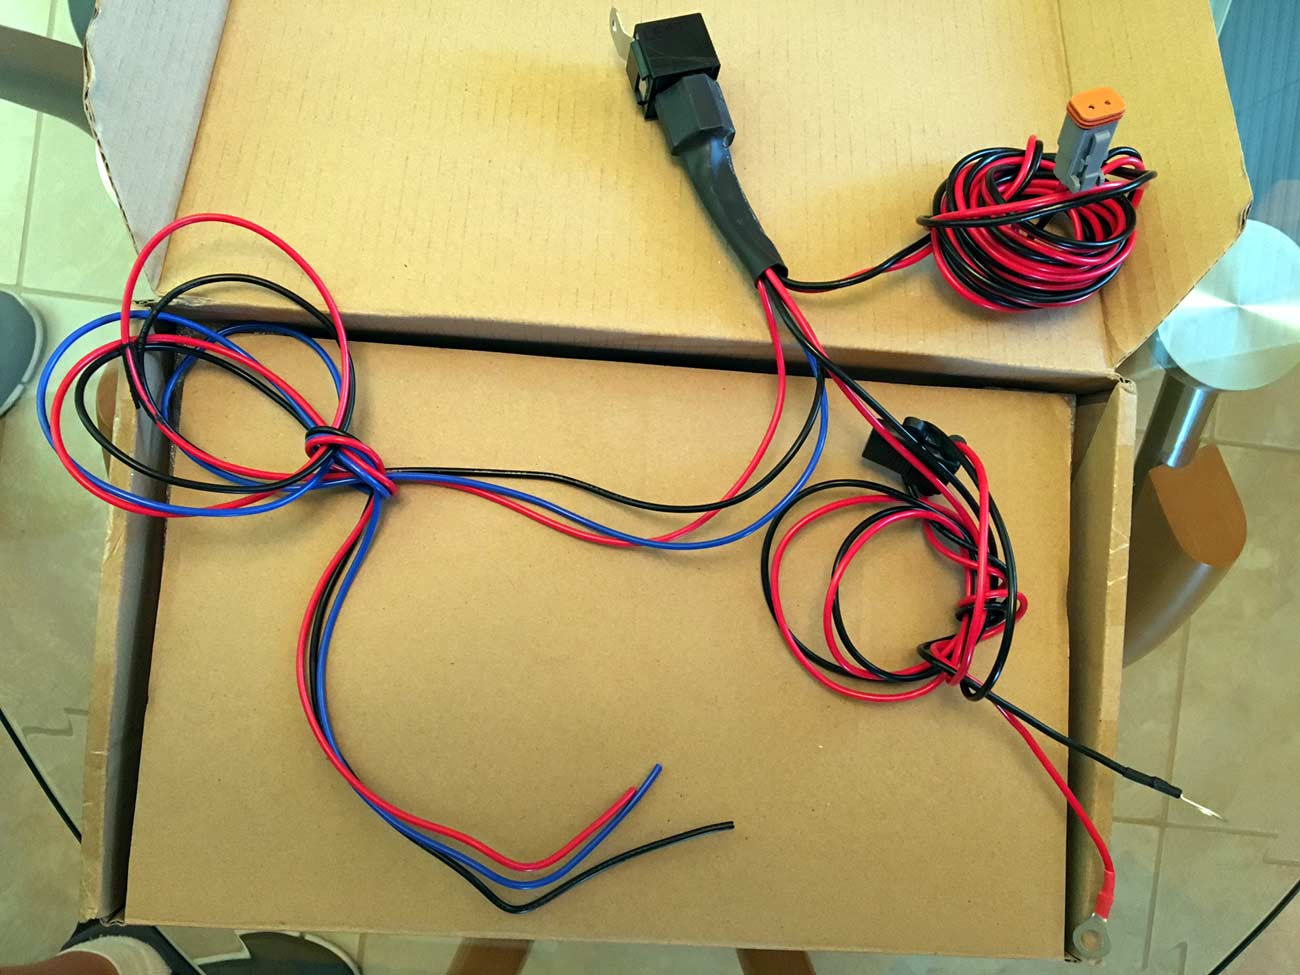 Aob Switch And Black Oak Lights Wiring Page 2 Toyota 4runner Thread One More Question About Up Led Light Bar Img 2609a